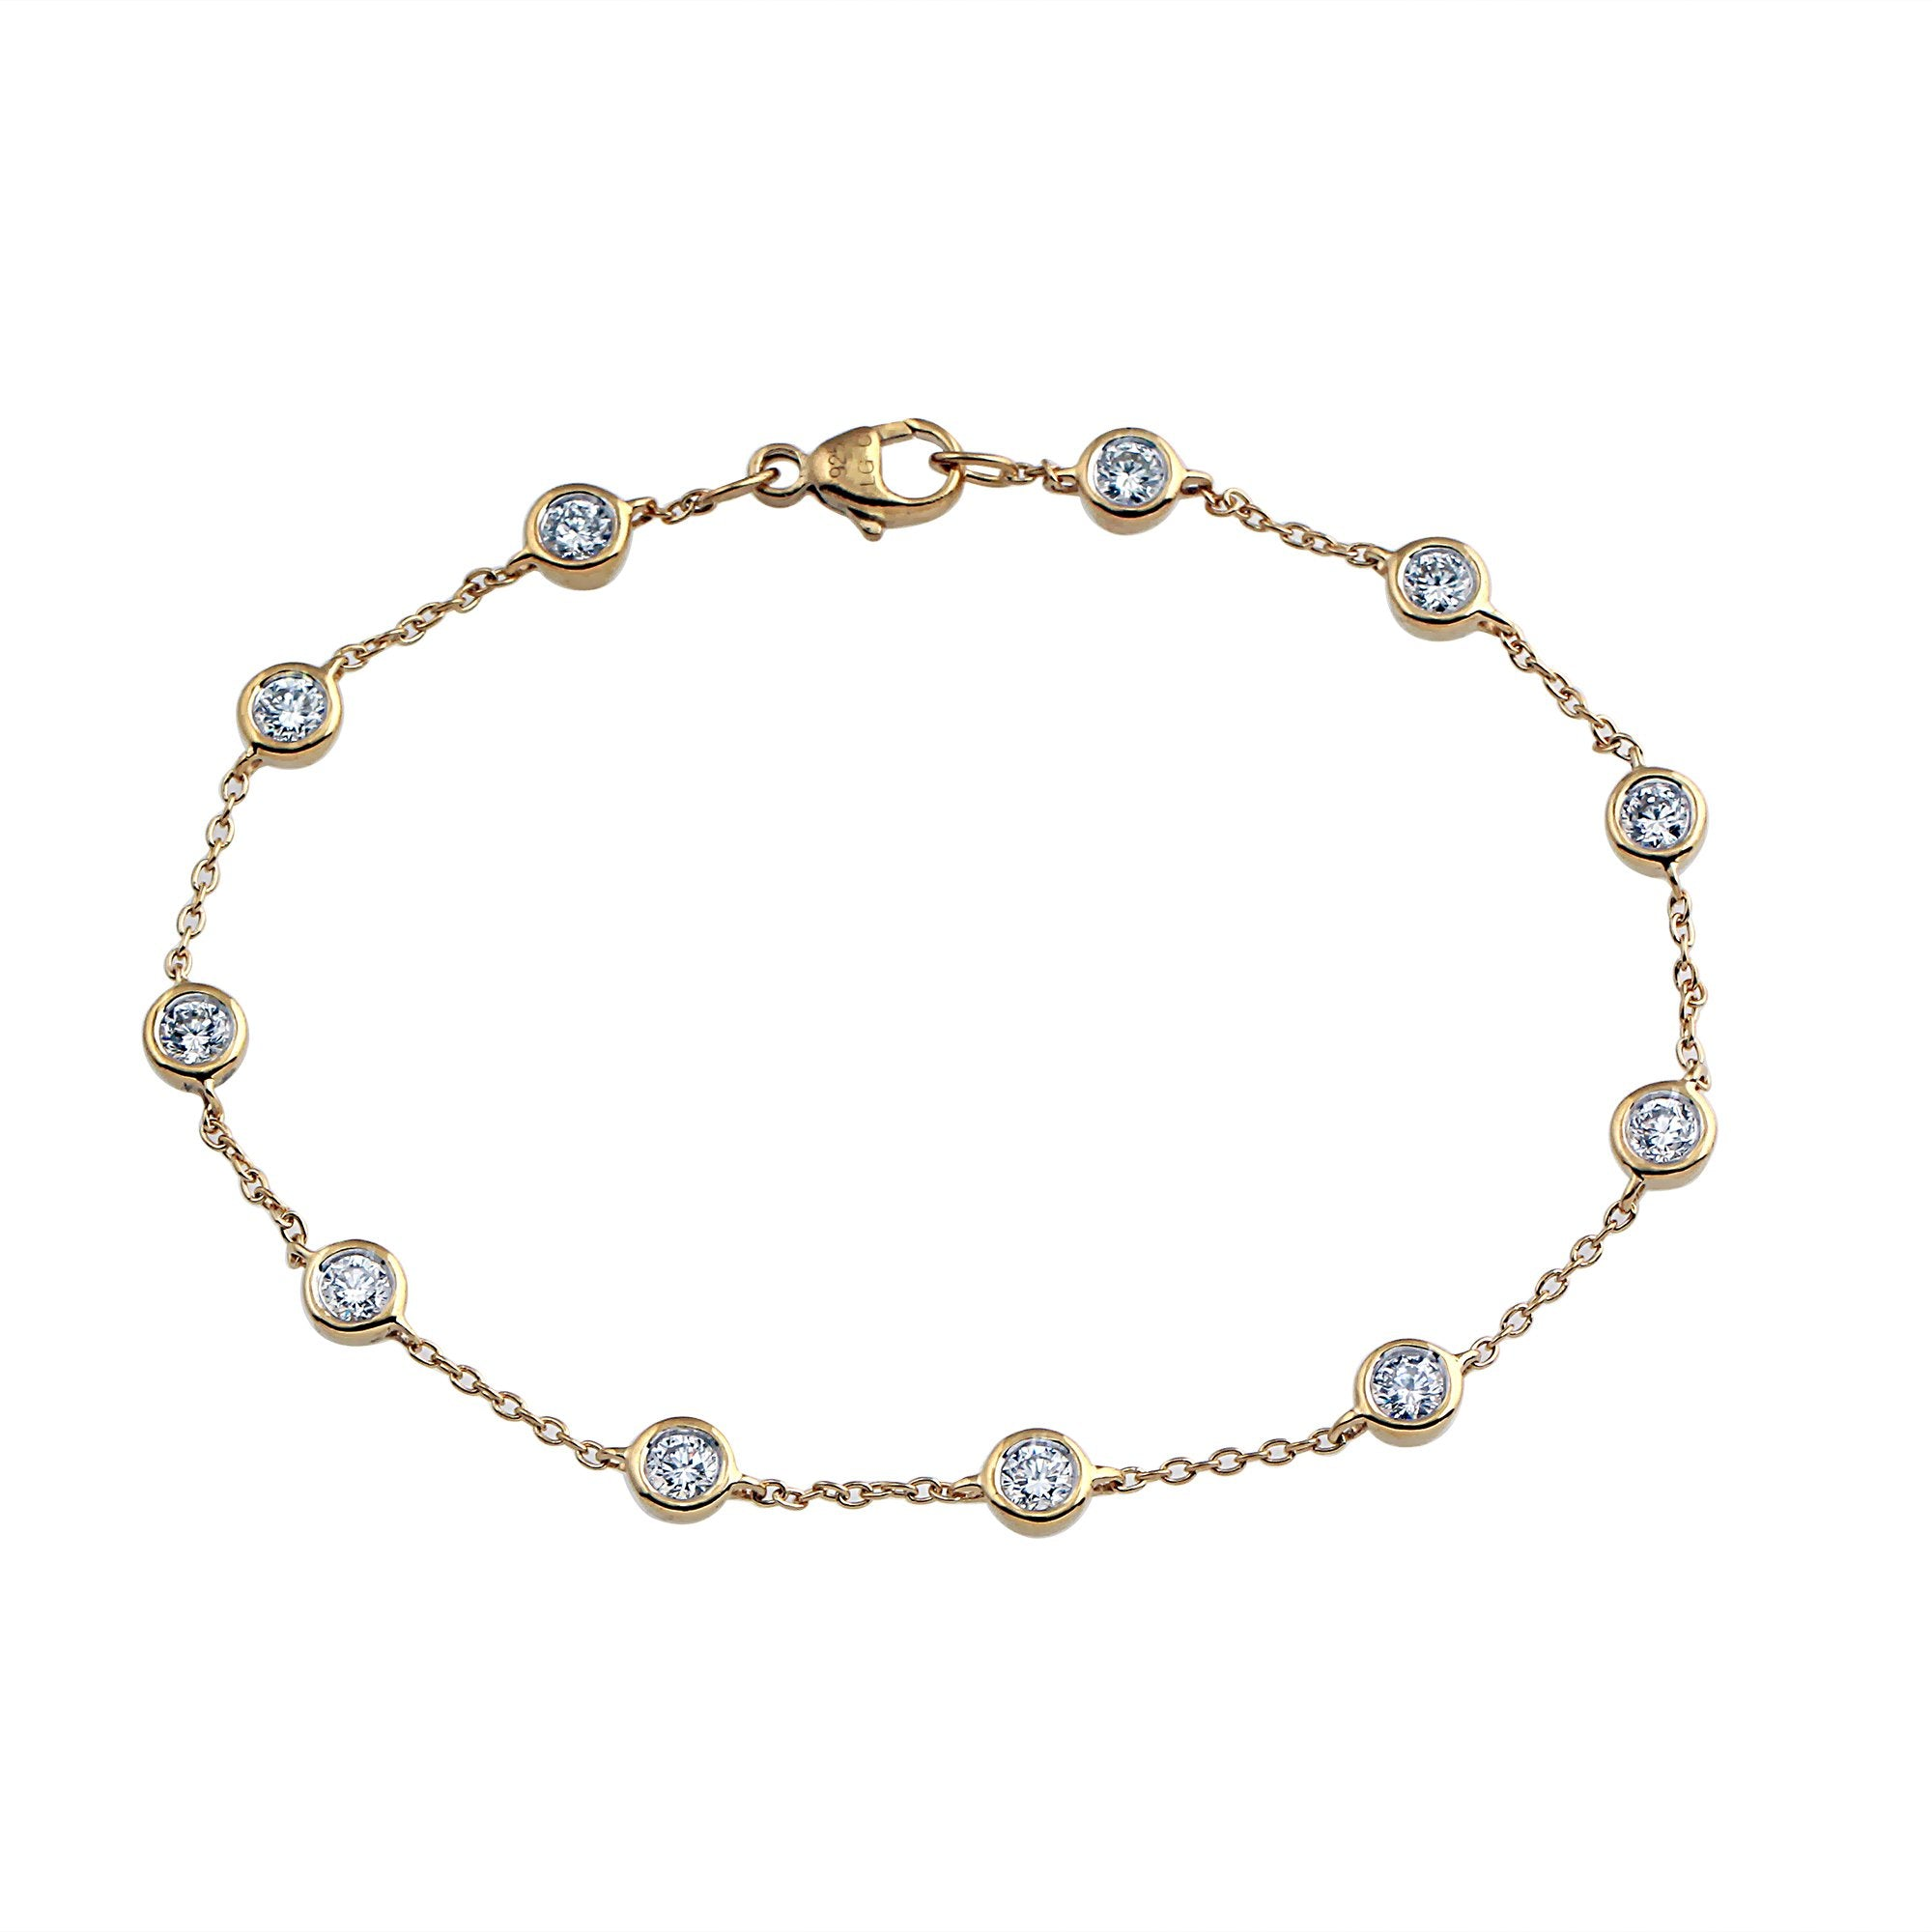 Phoenix Lab-Grown Diamond Station Bracelet - 14k Gold Over Sterling Silver (1.1 ct. tw.)